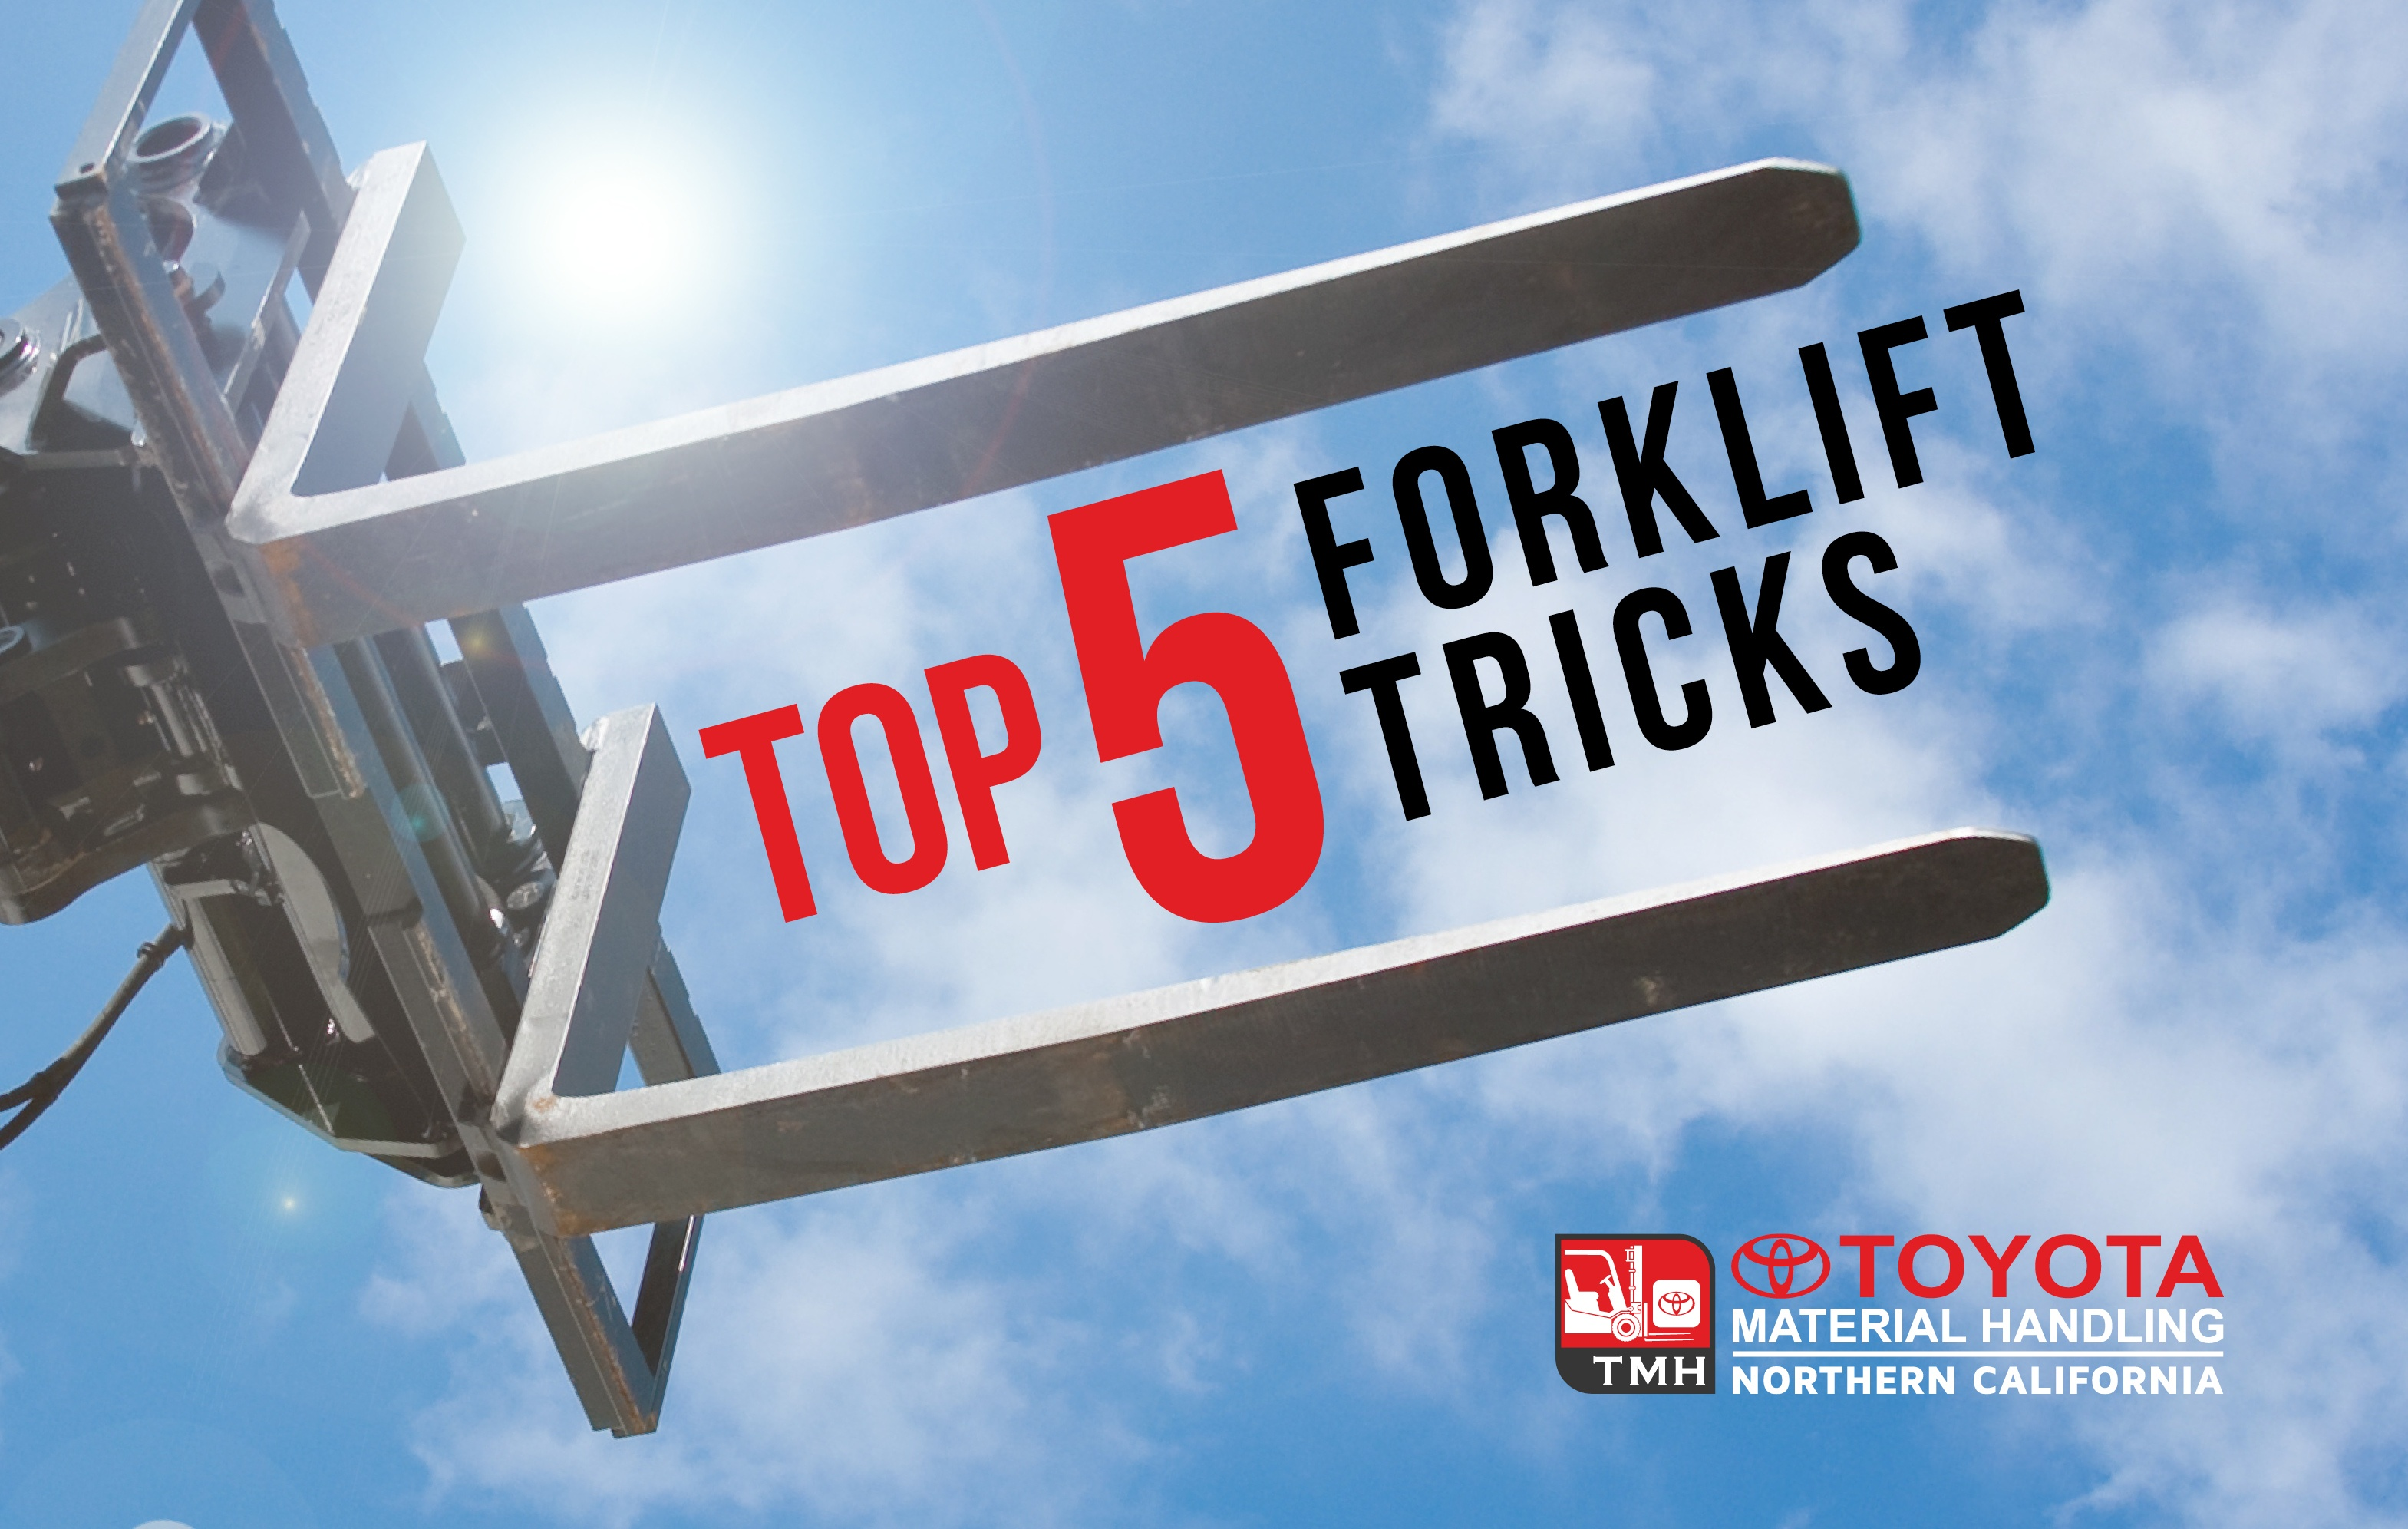 top 5 forklift tricks